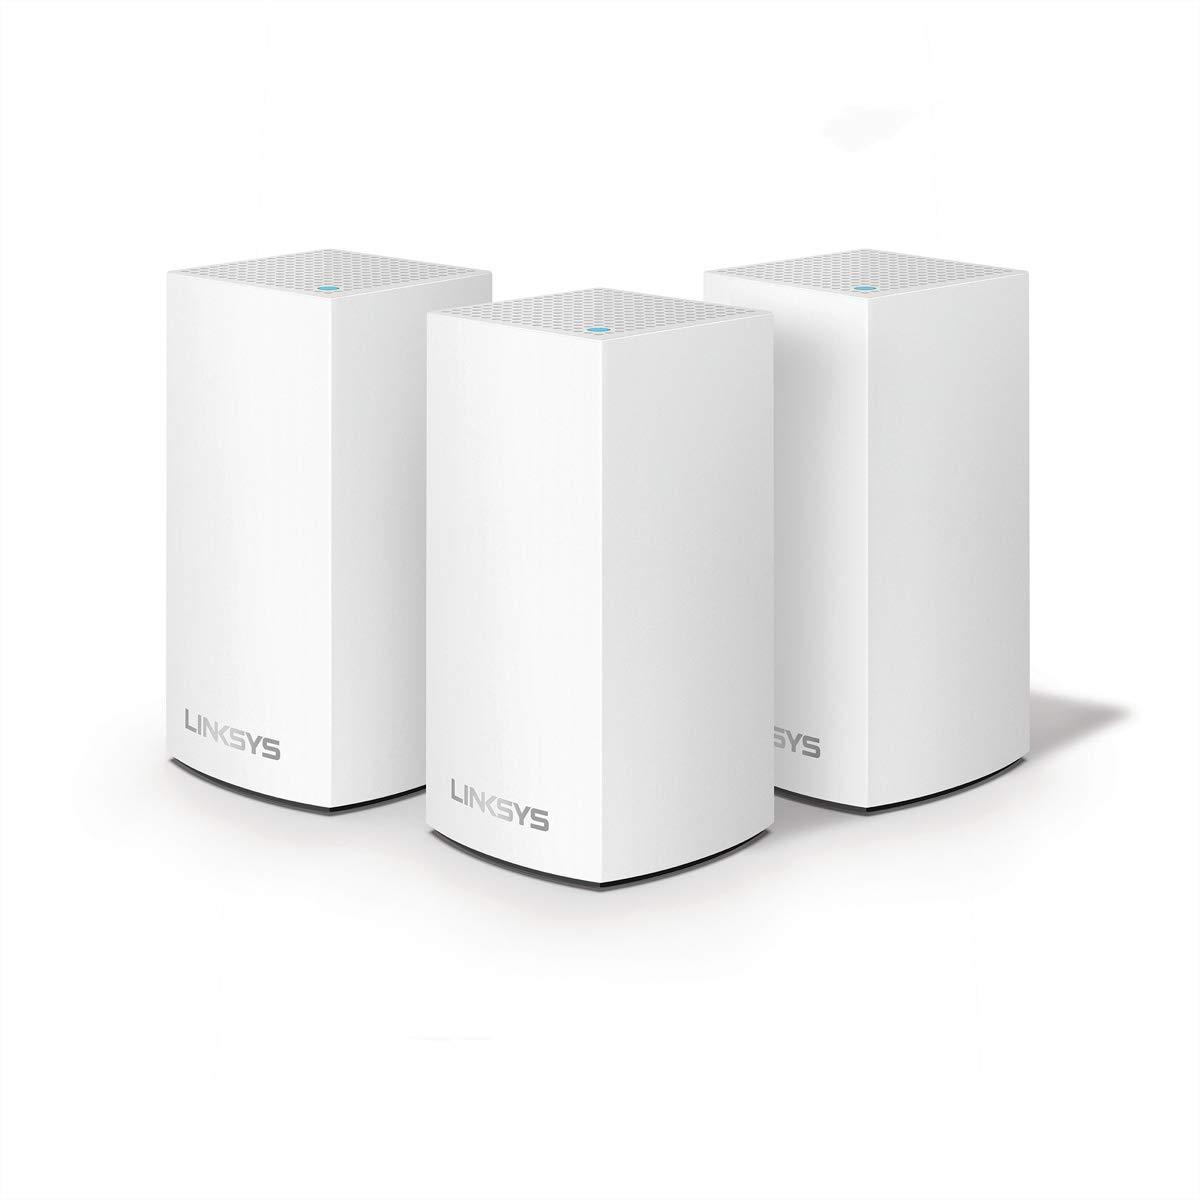 Linksys VLP0103-UK AC3600 Velop Whole Home Mesh WiFi System Dual-Band 3-Pack